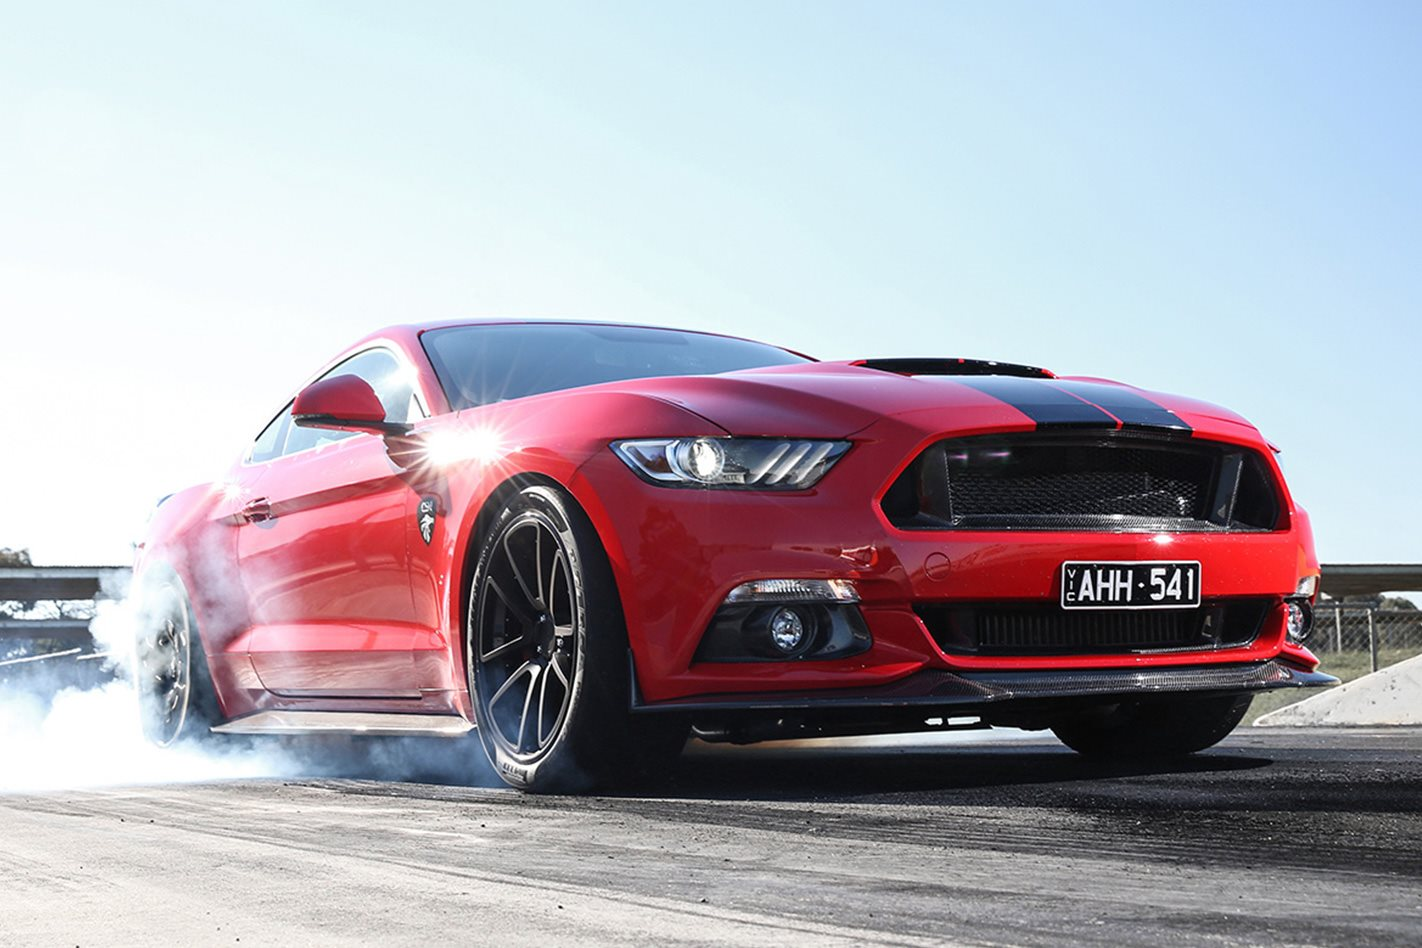 2017-Corsa-Specialised-Vehicles-Mustang-GT-reving.jpg